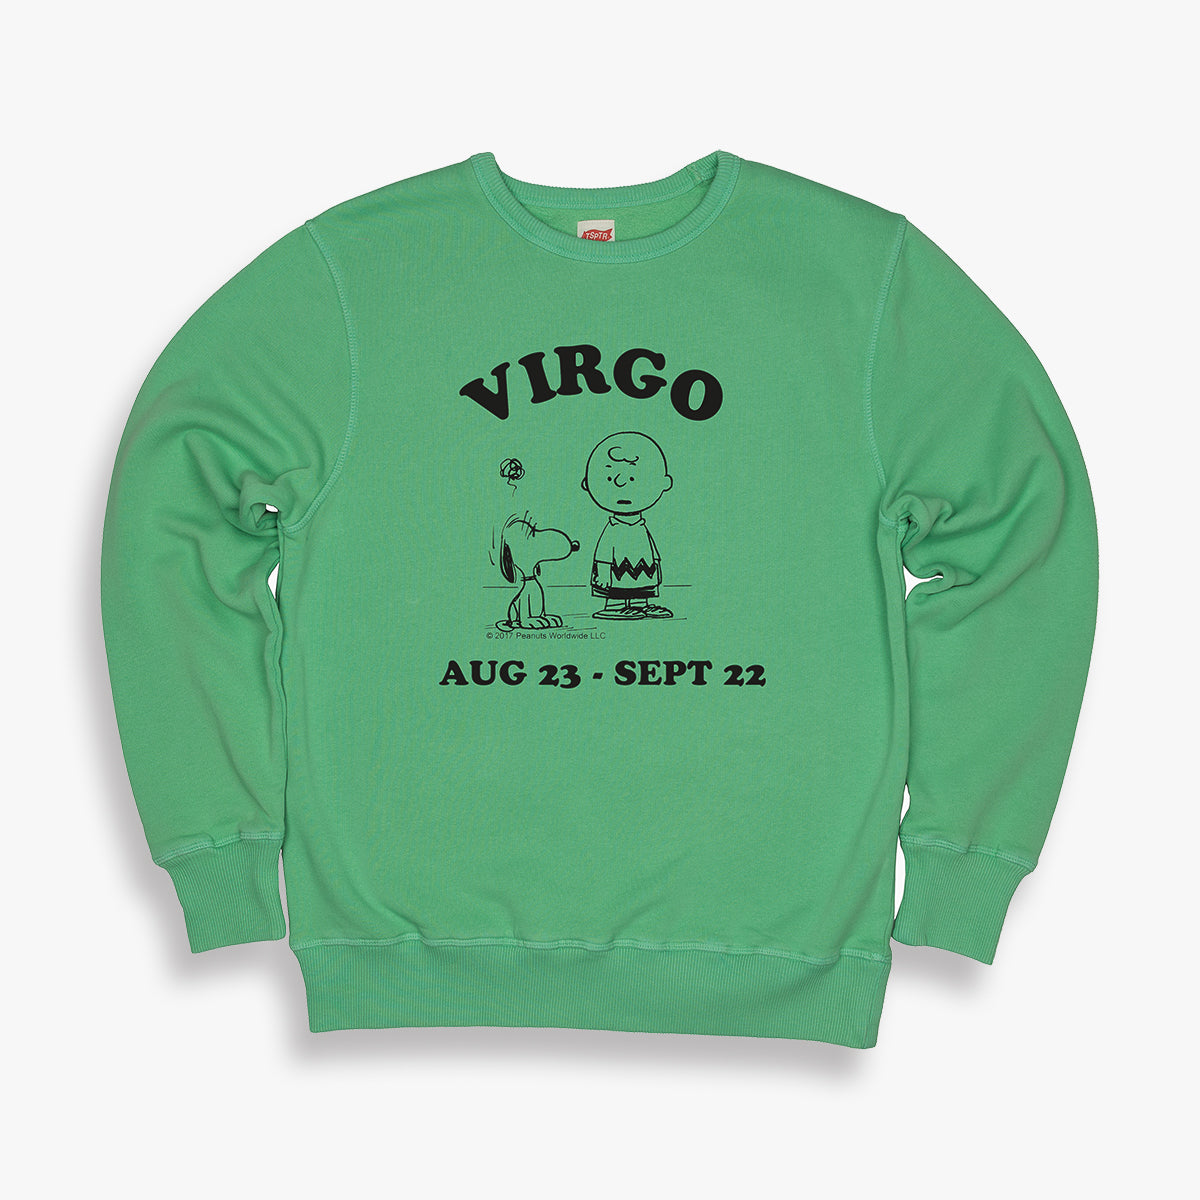 VIRGO Sweatshirt